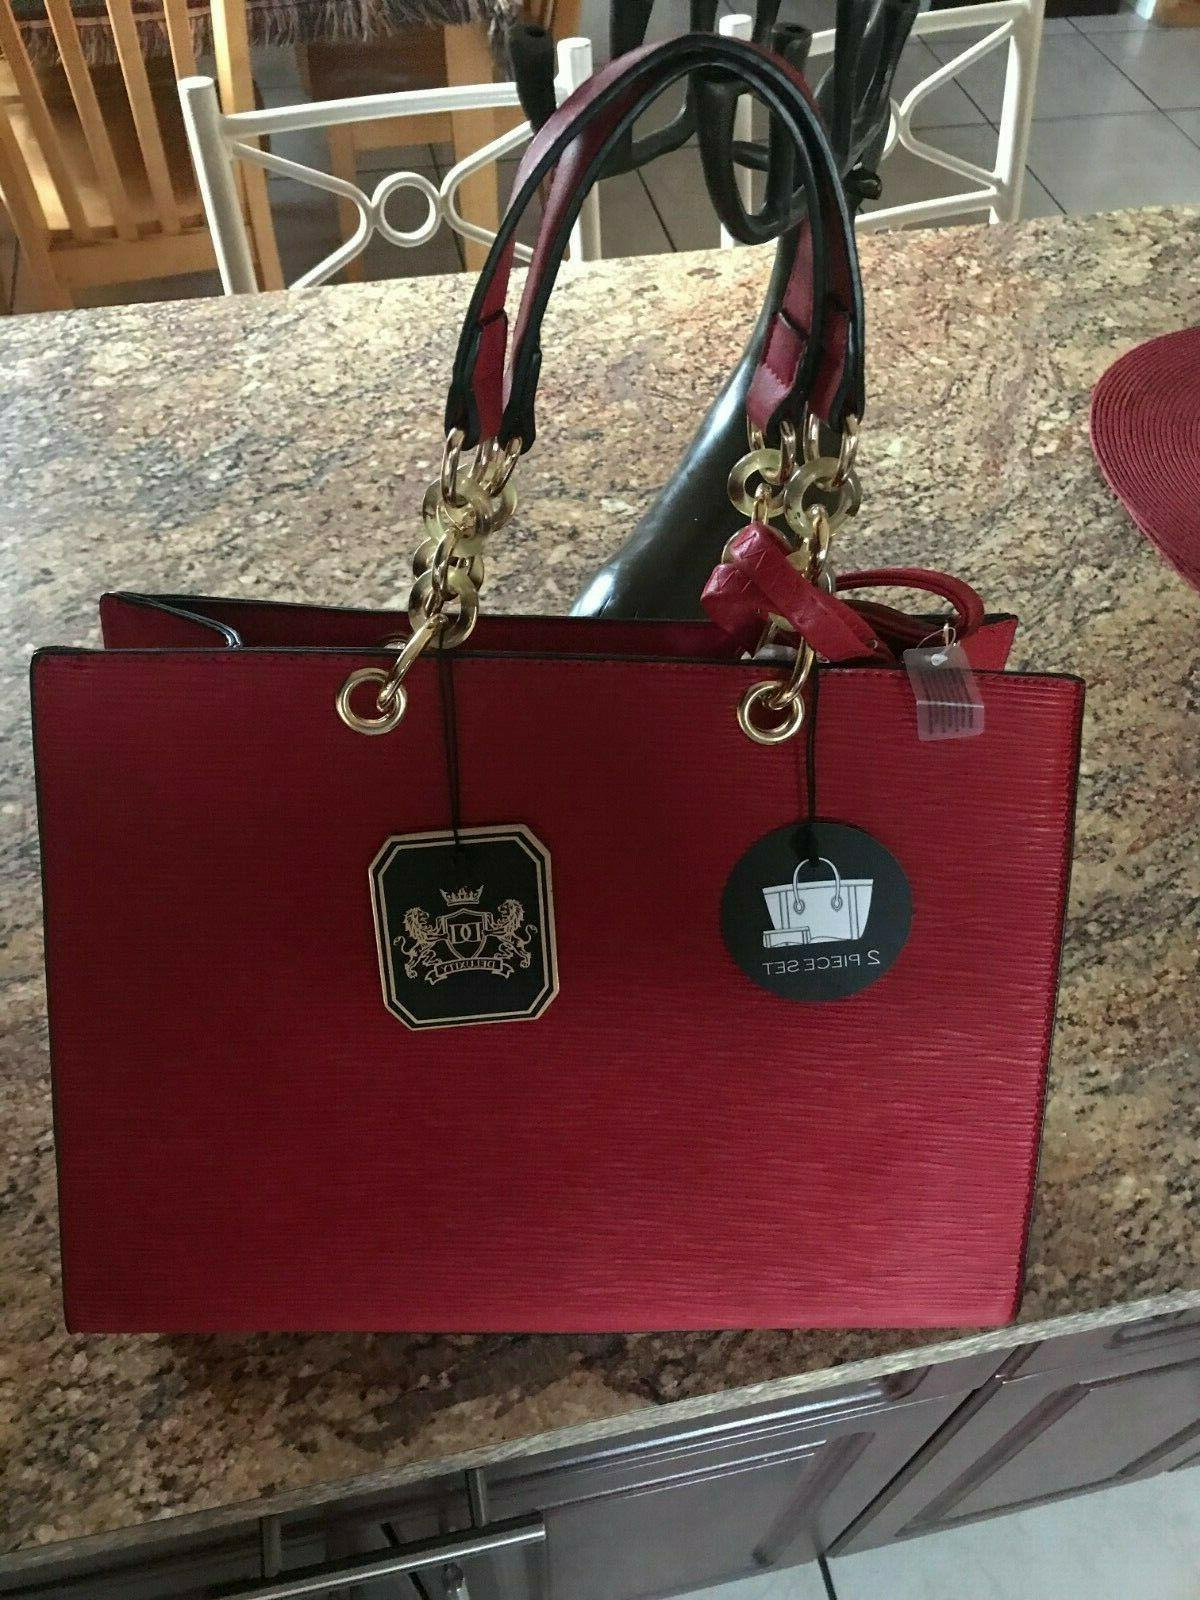 brand new red handbag with tag